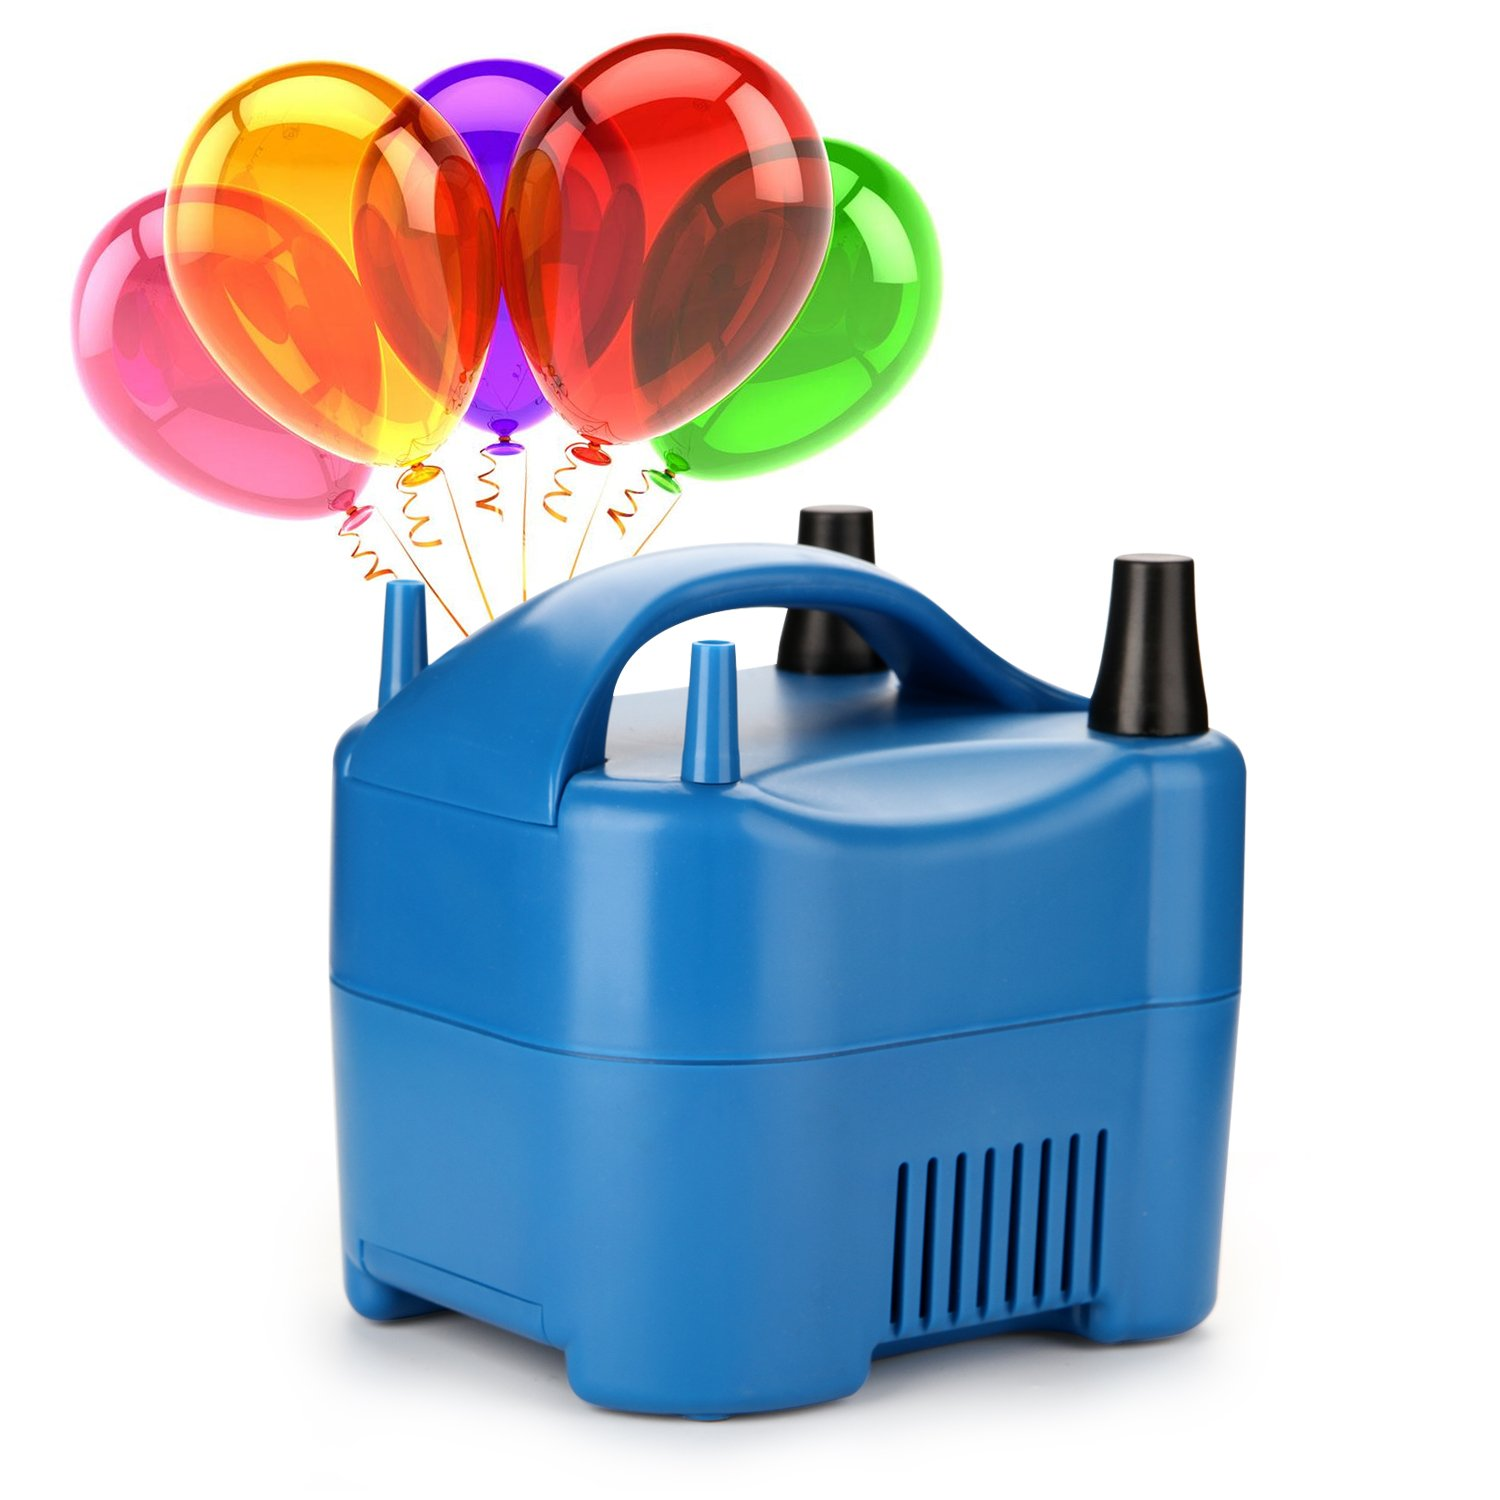 AGPtek Two Nozzle High Power Electric Balloon Inflator Pump Portable Blue Air Blower, 680W High Power, Inflate In One Second BP3-EU